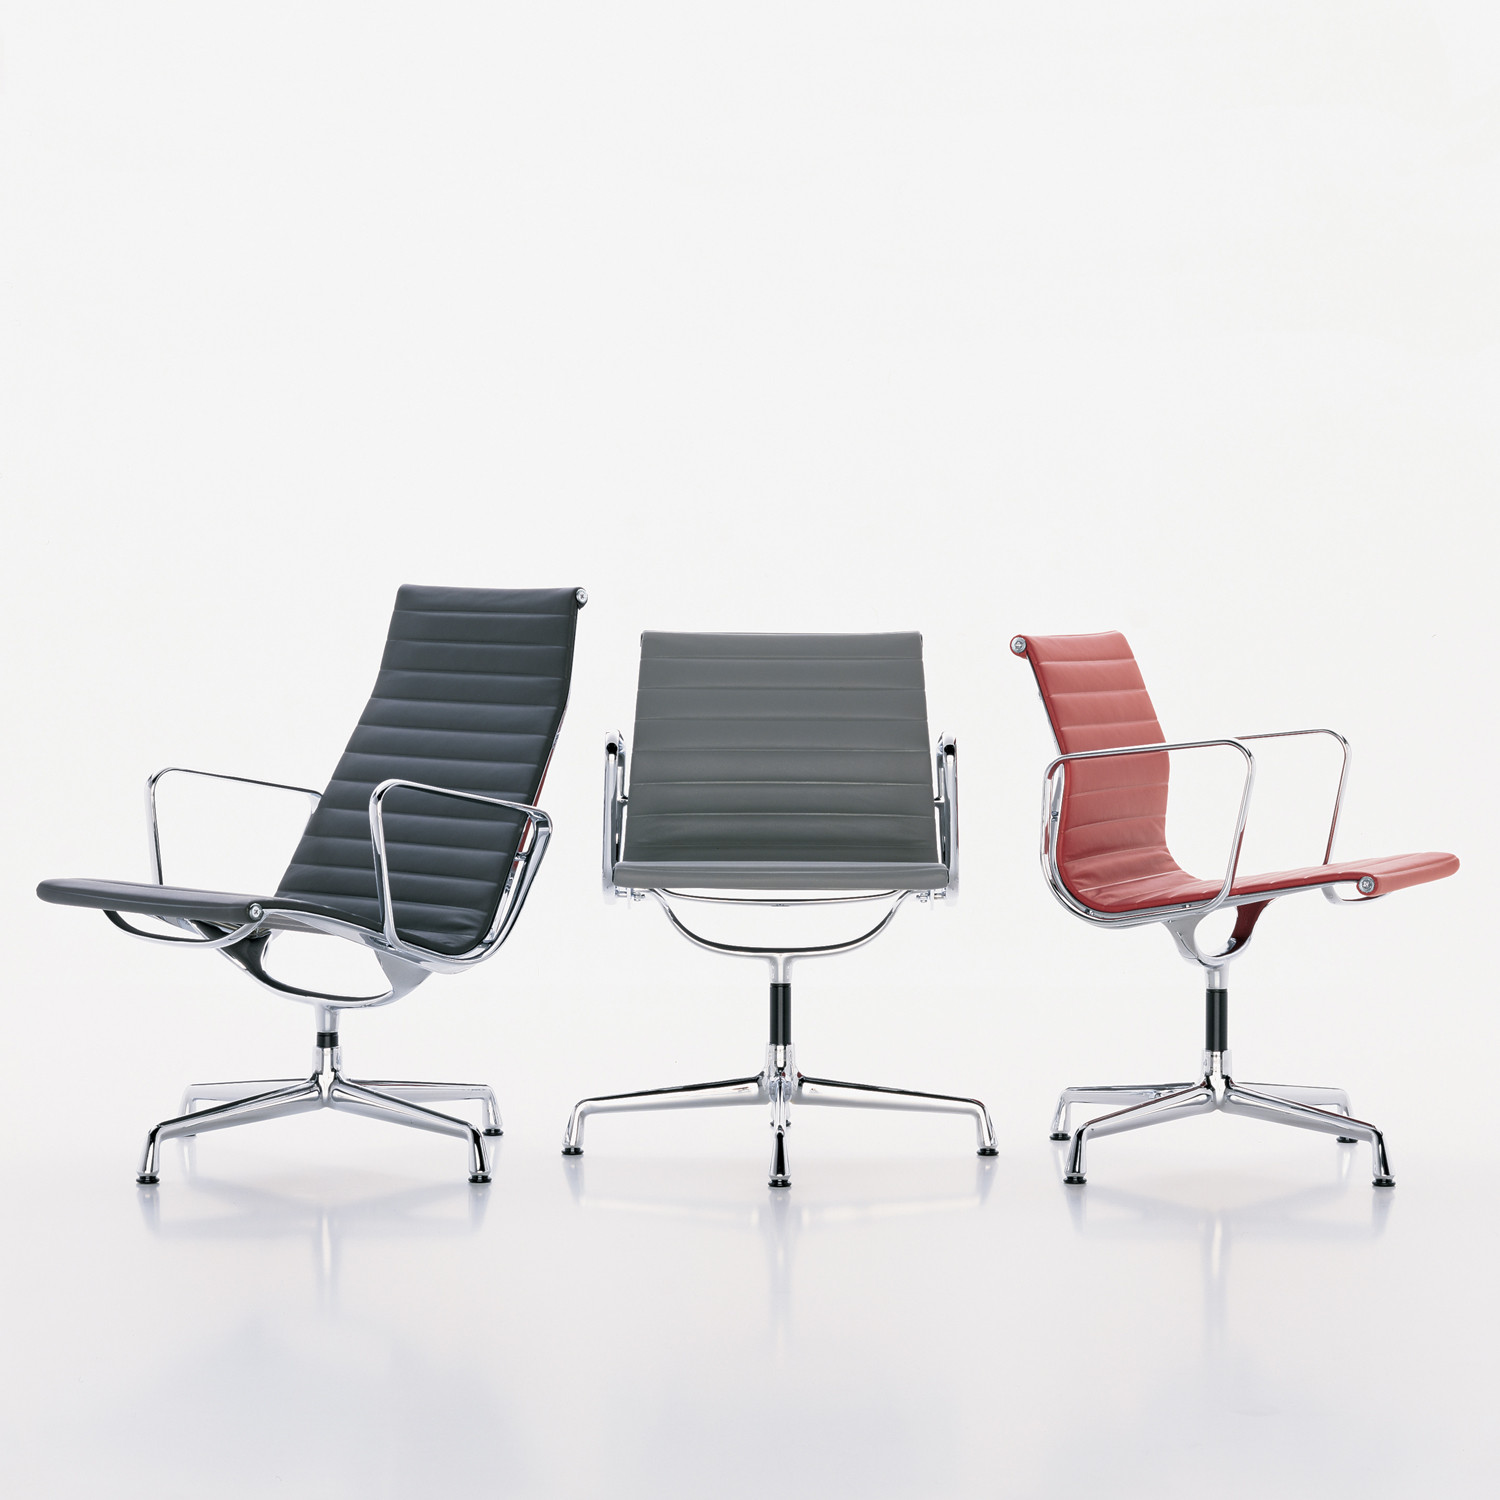 Vitra Eames Aluminium Group Chairs